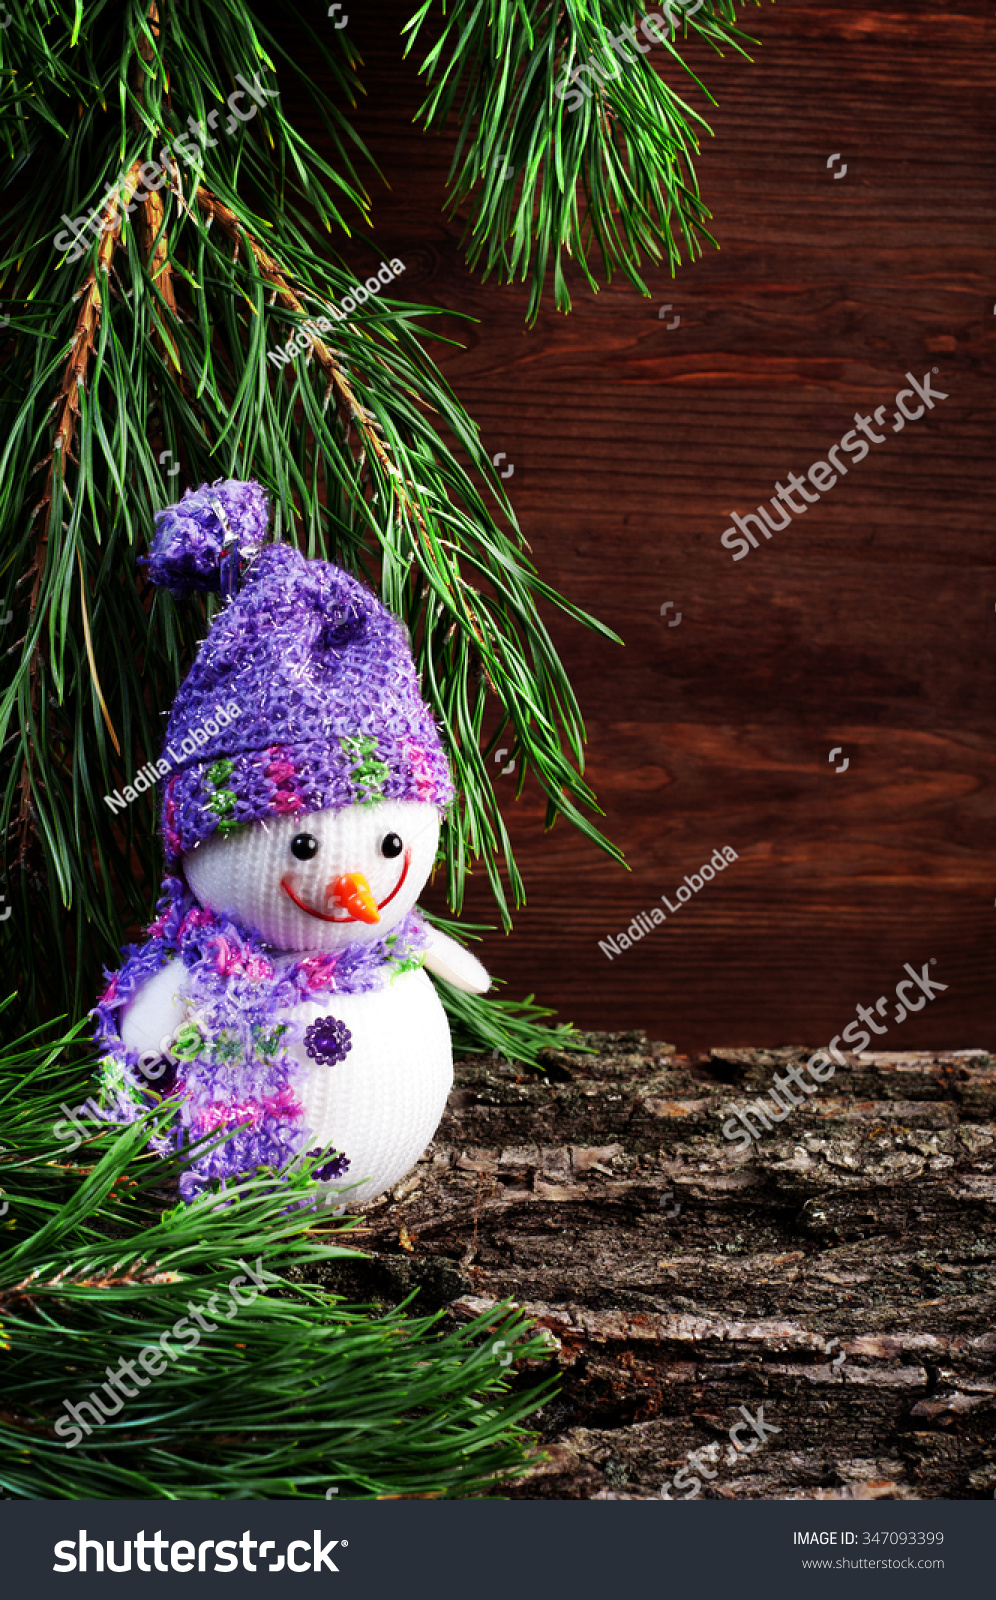 christmas and new year wallpapers snowman on the background of the wooden planks and pine